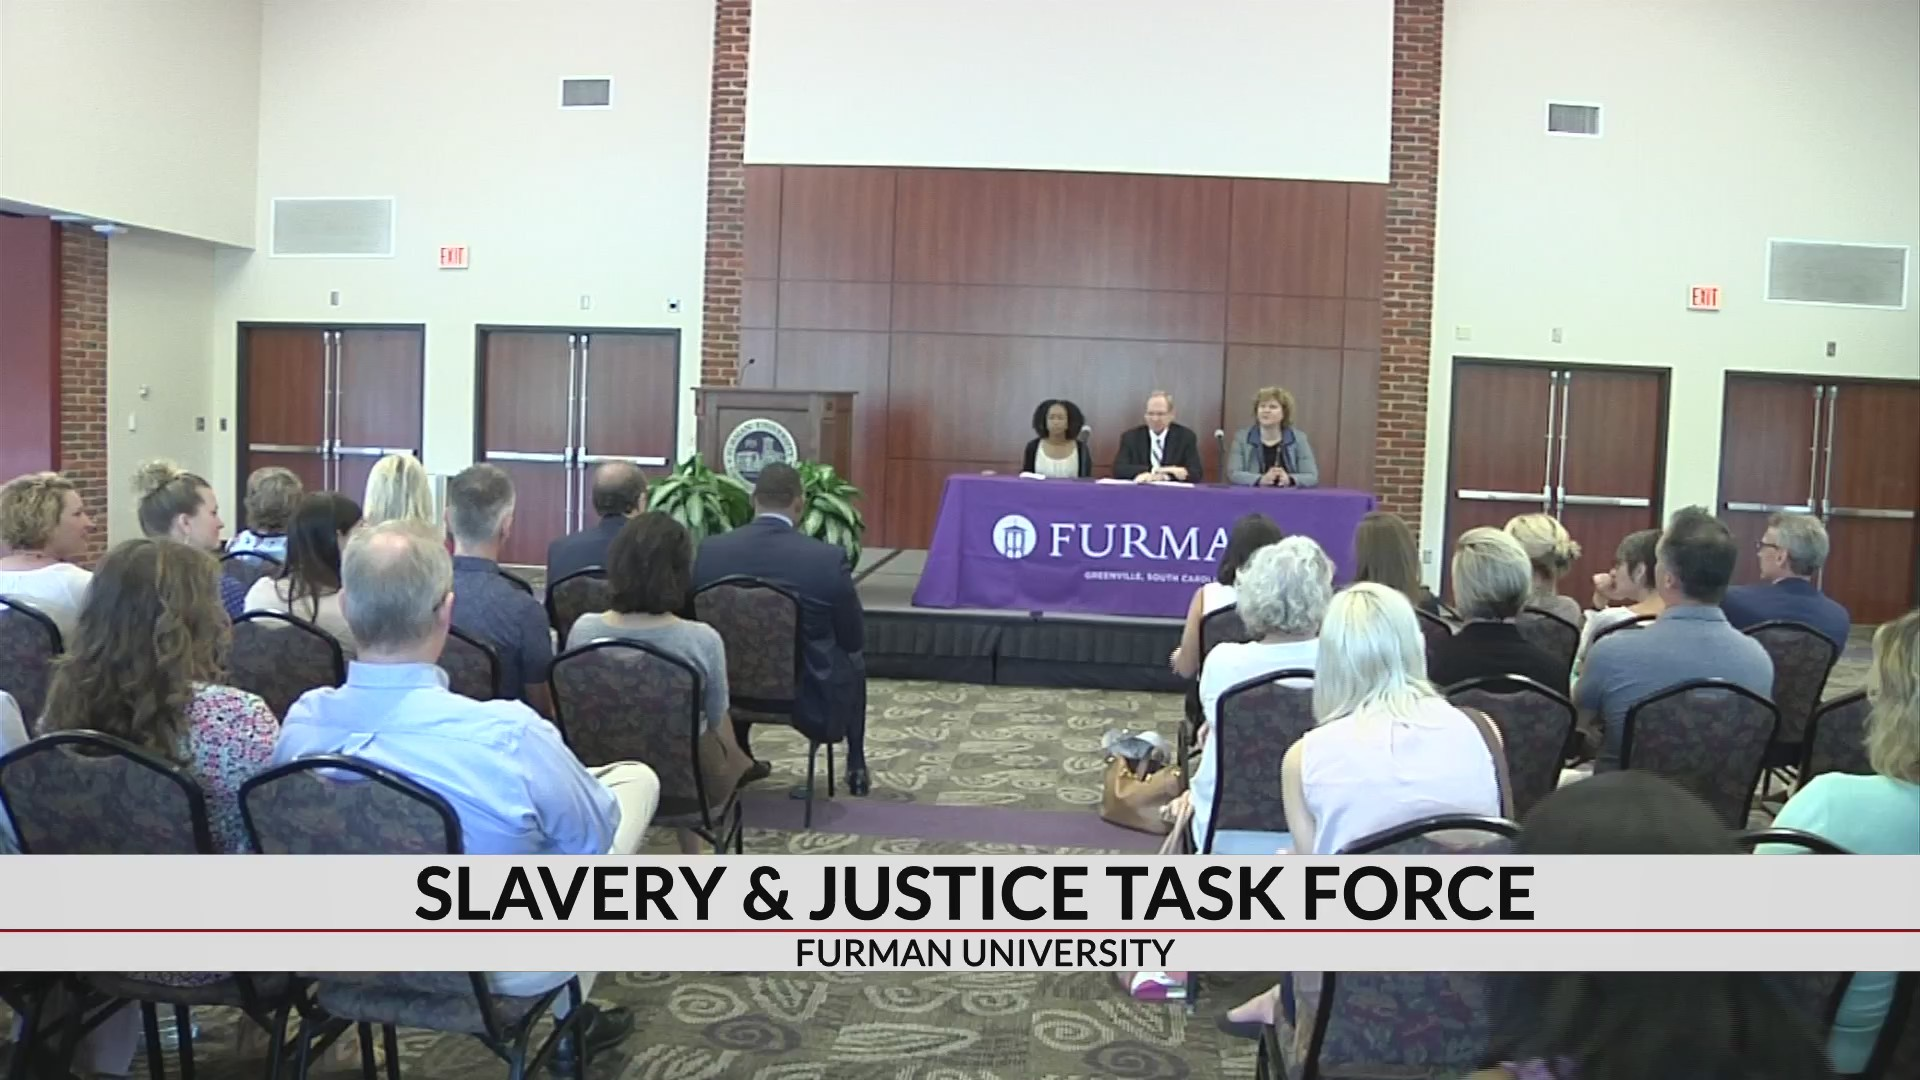 Furman University announces big changes after learning historical ties to slavery